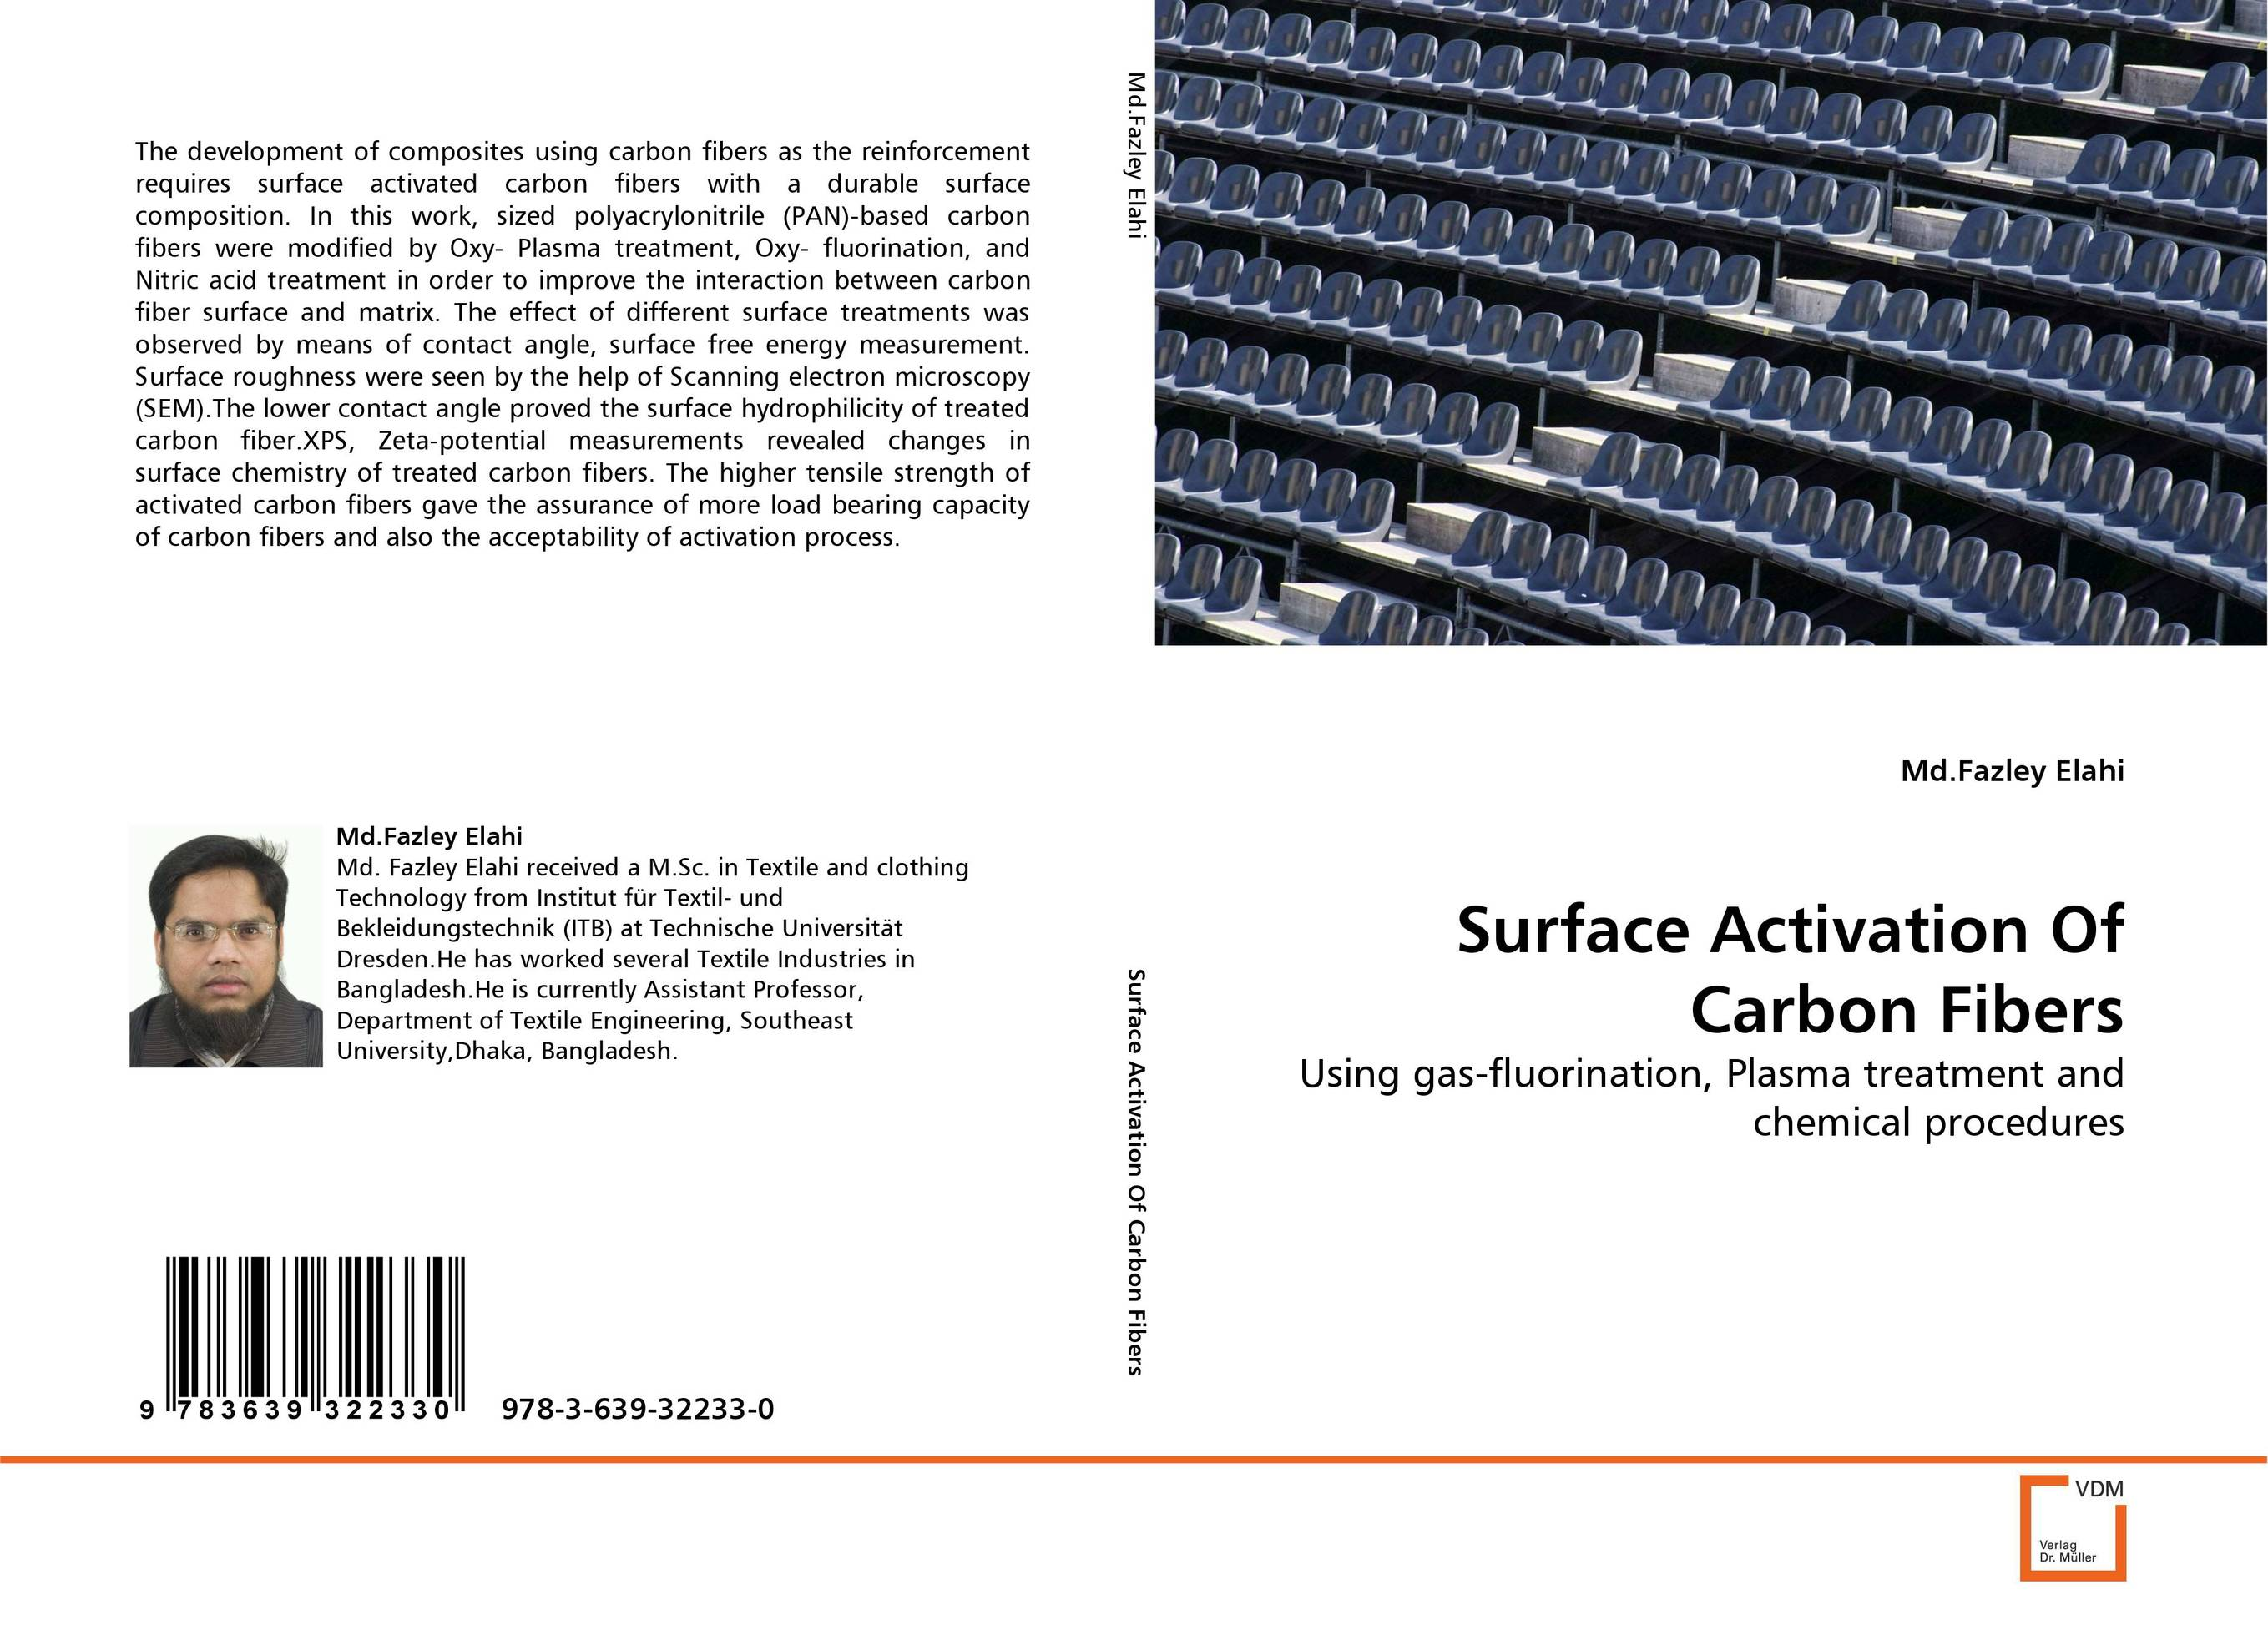 Surface Activation Of Carbon Fibers